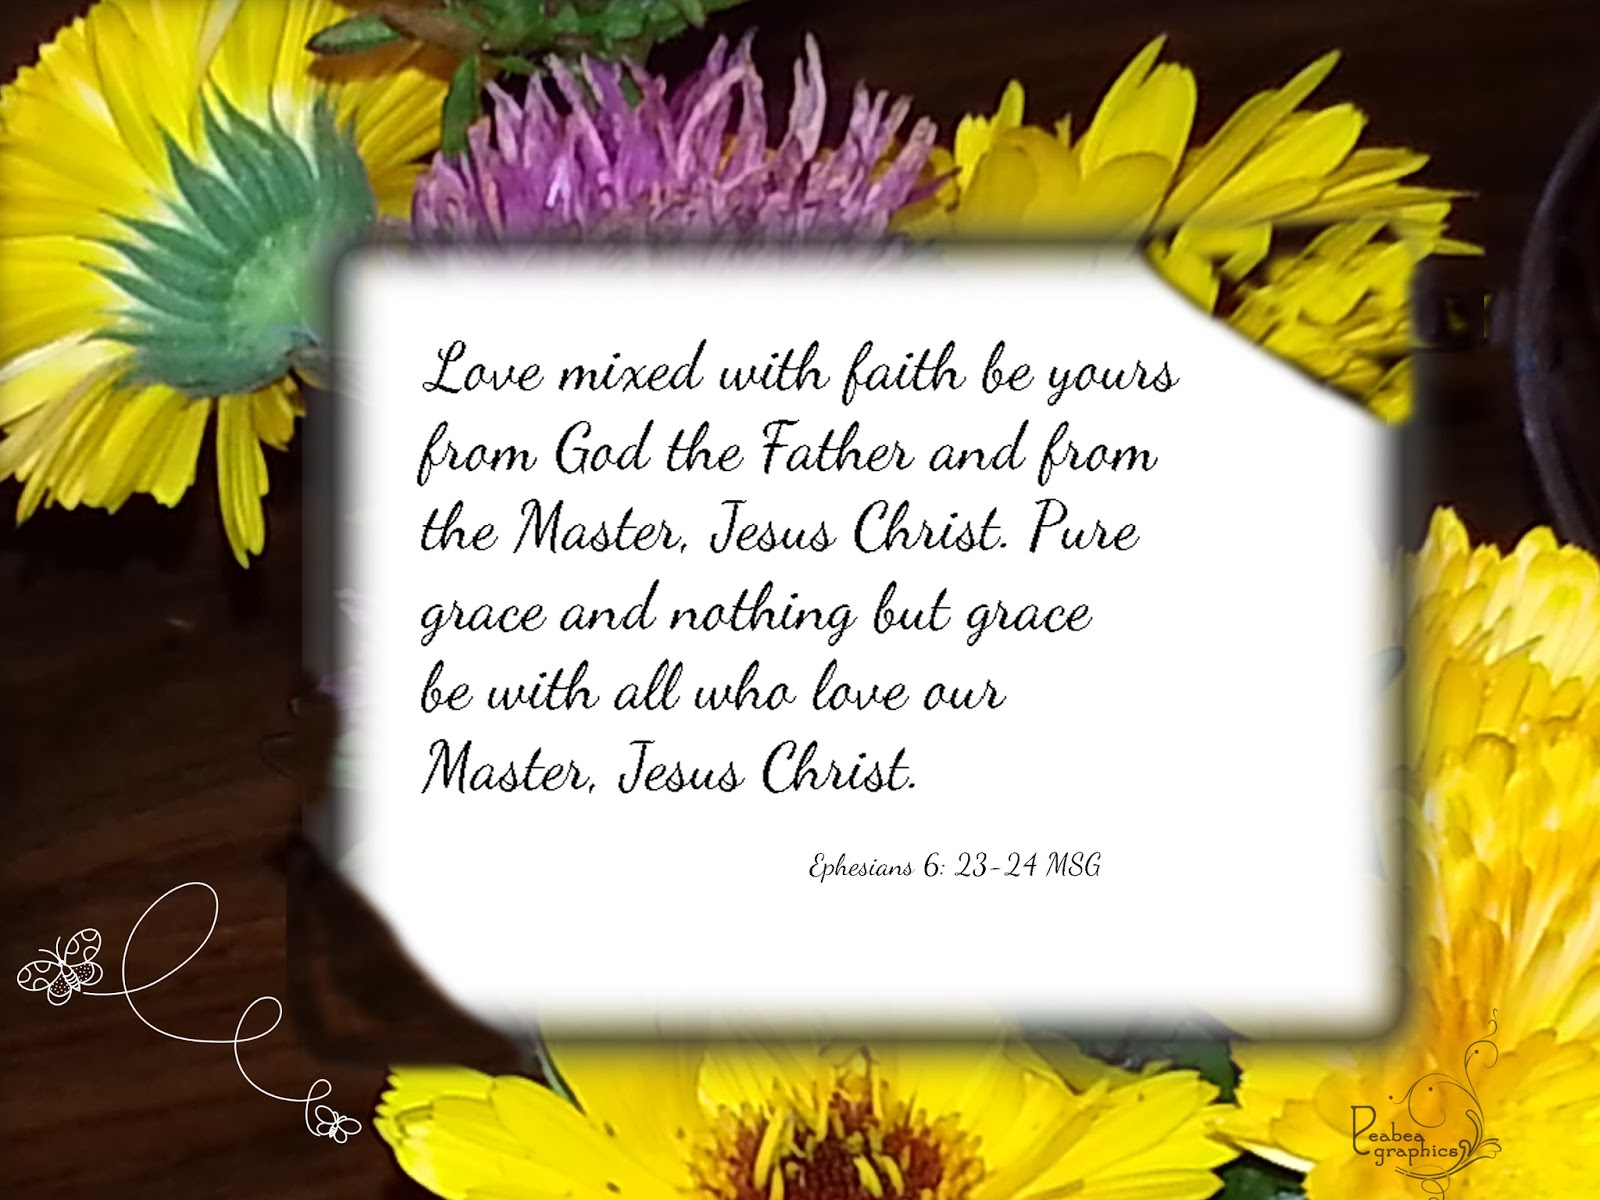 Peabea's Photos 'n Scribbles: Sunday Scripture Blessing